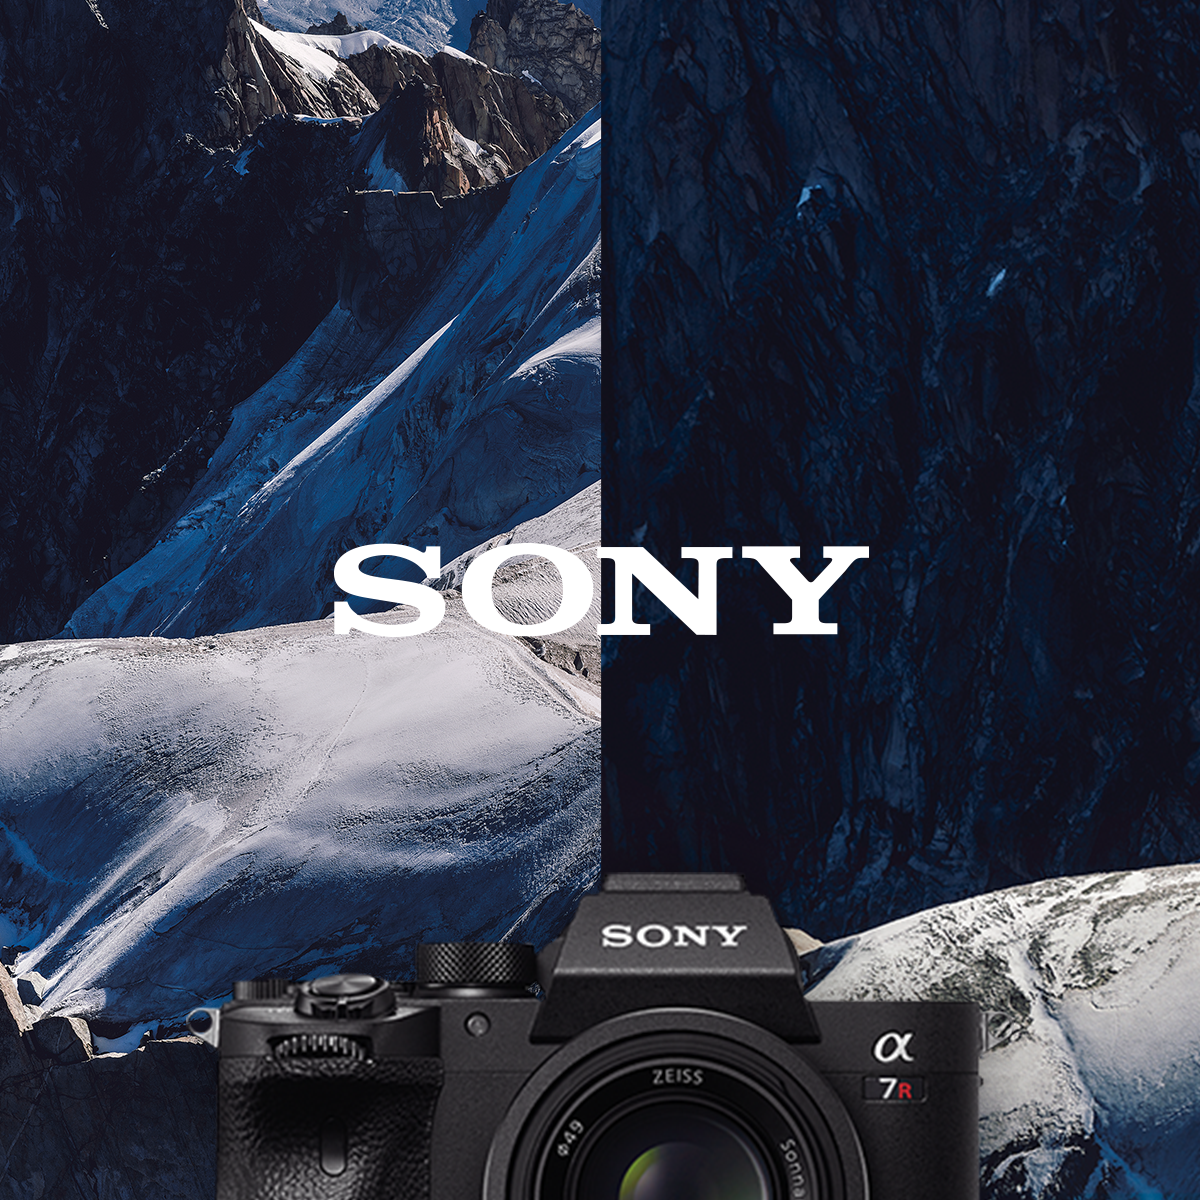 Sony Hong Kong Facebook